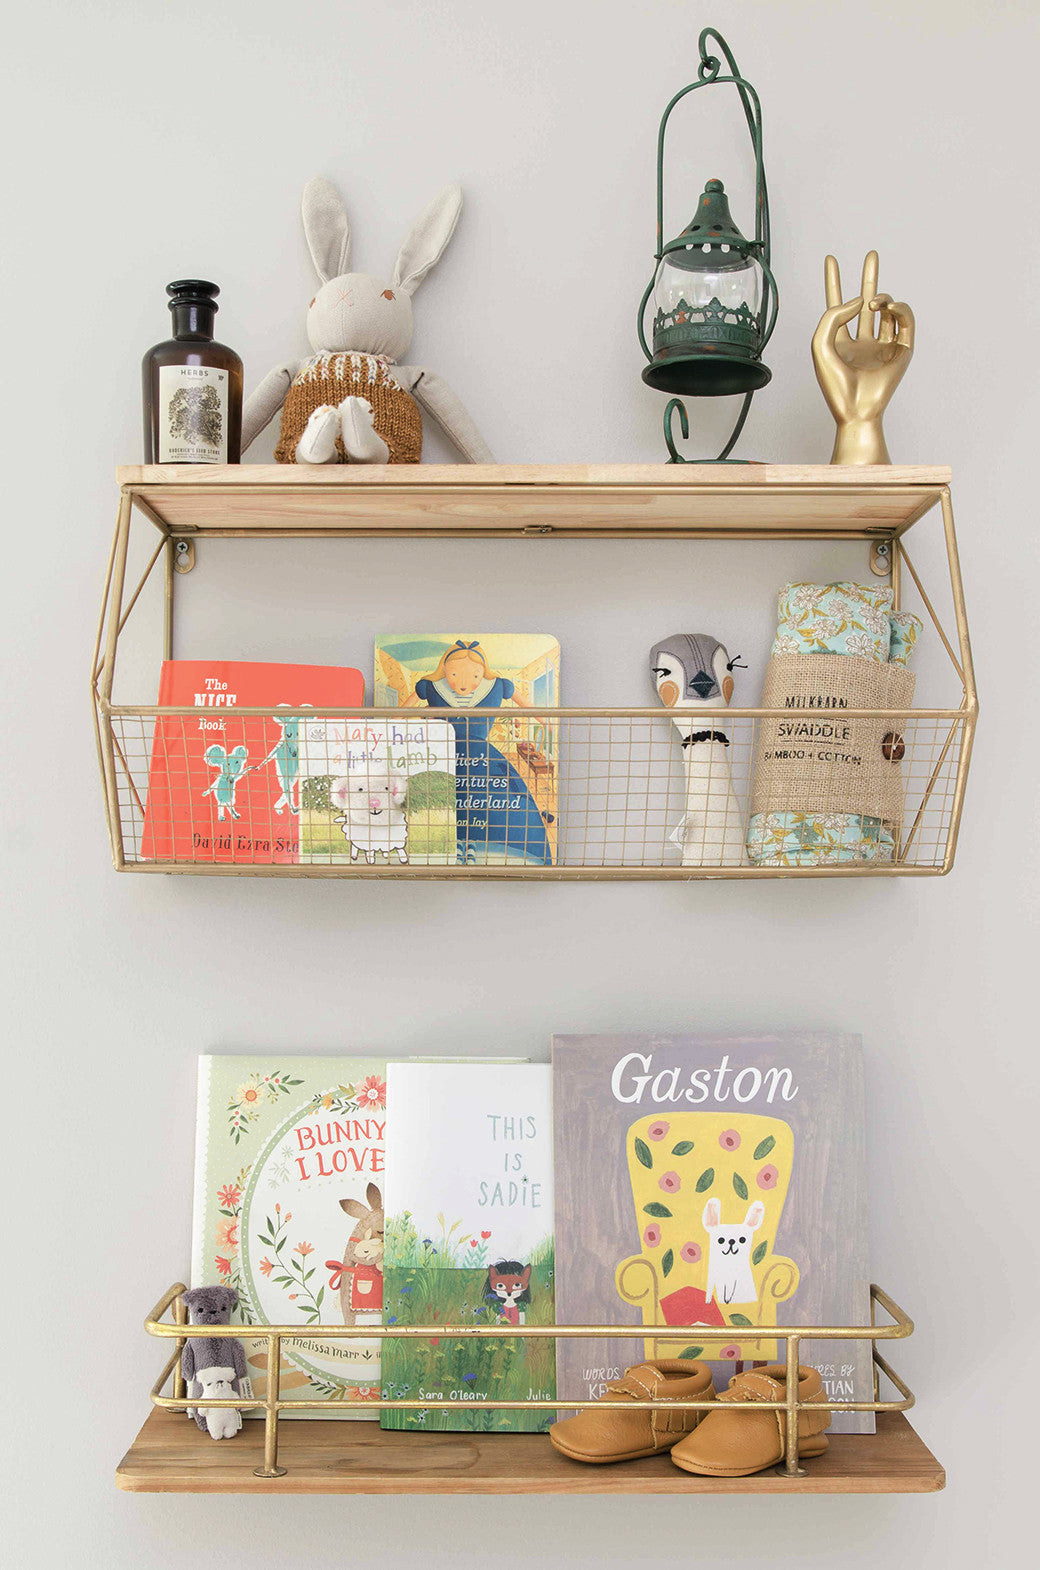 dainty cheeks nursery shelf